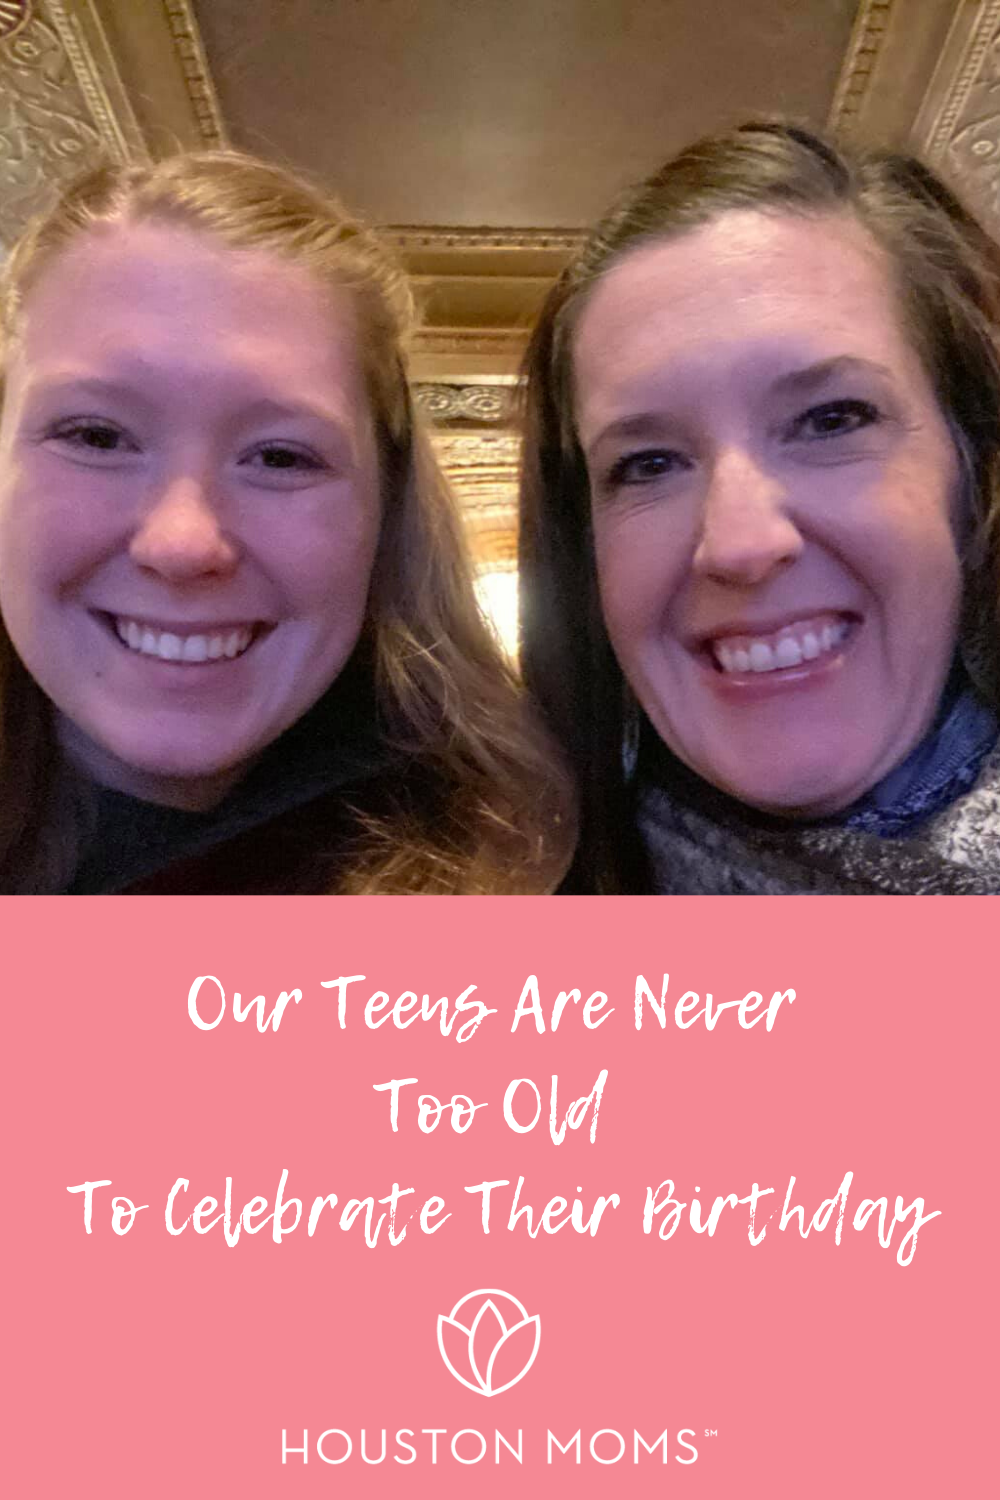 "Houston Moms ""Our Teens are Never Too old to Celebrate Their Birthday"" #houstonmomsblog #houstonmoms #momsaroundhouston"